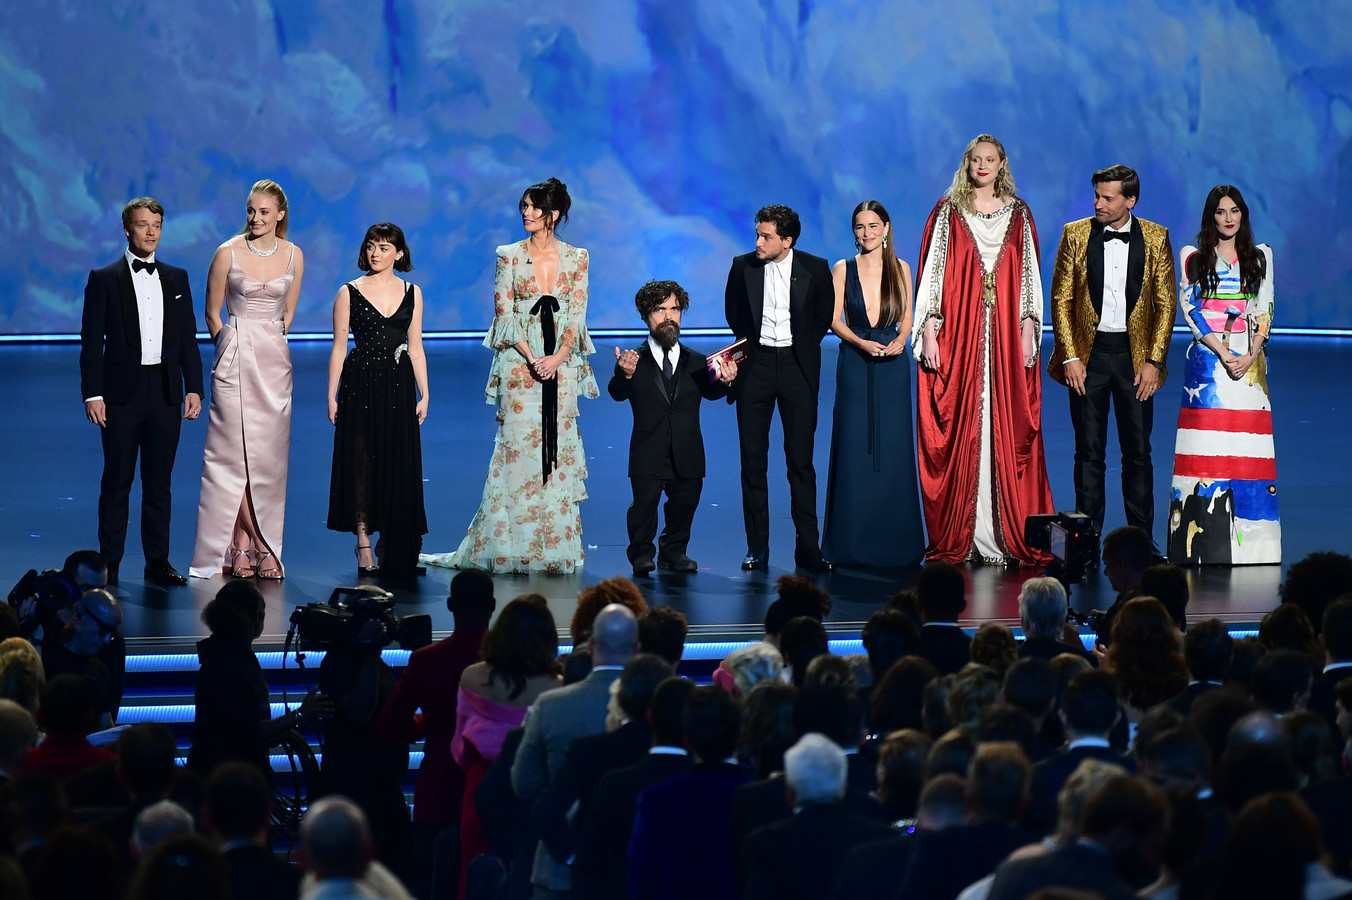 De cast van 'Game of Thrones' (HBO) tijdens de Emmy Awards in het Microsoft Theatre in Los Angeles.